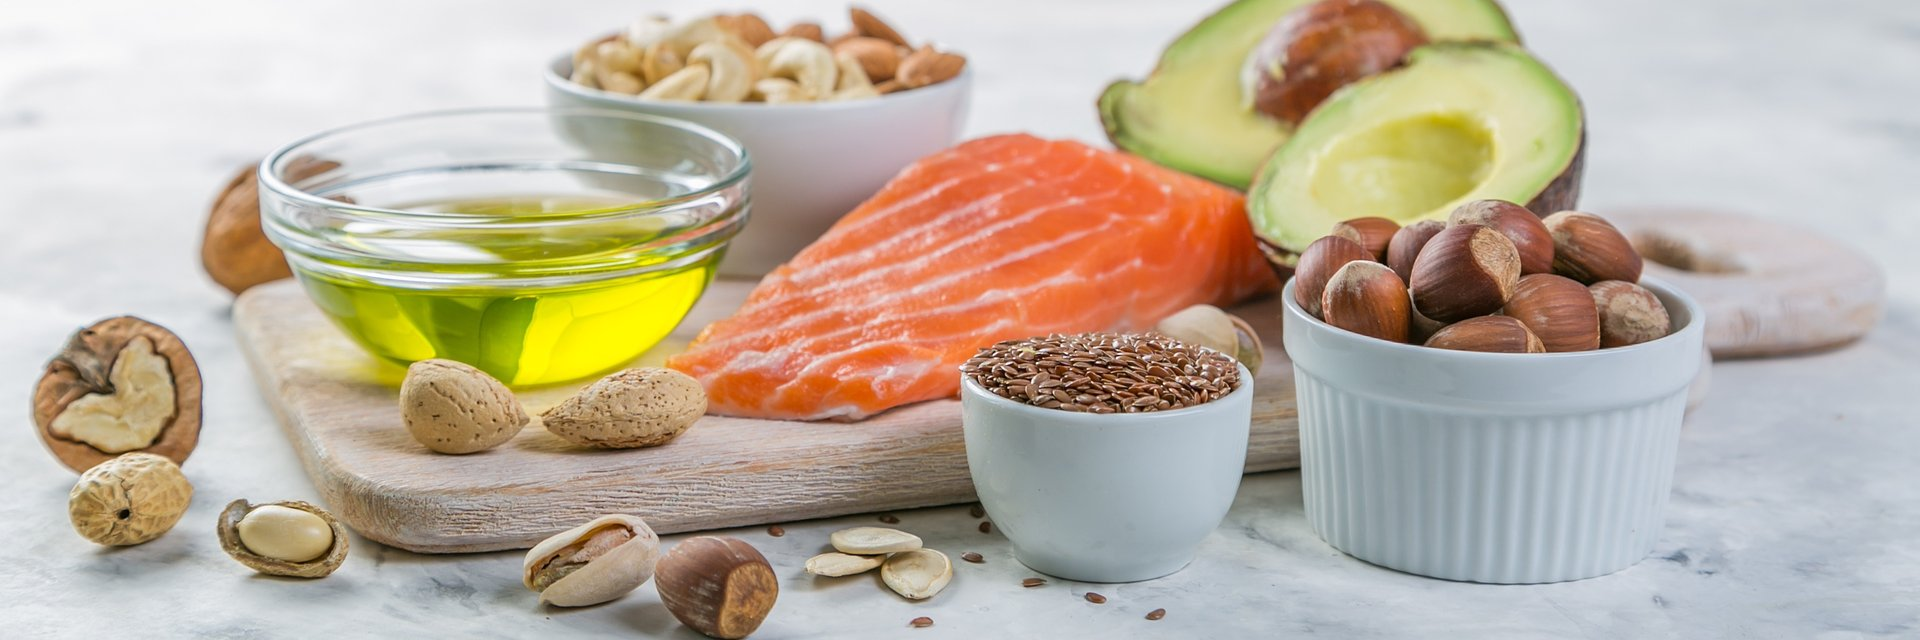 10 Keto Toppings and Staples to Stock Up On